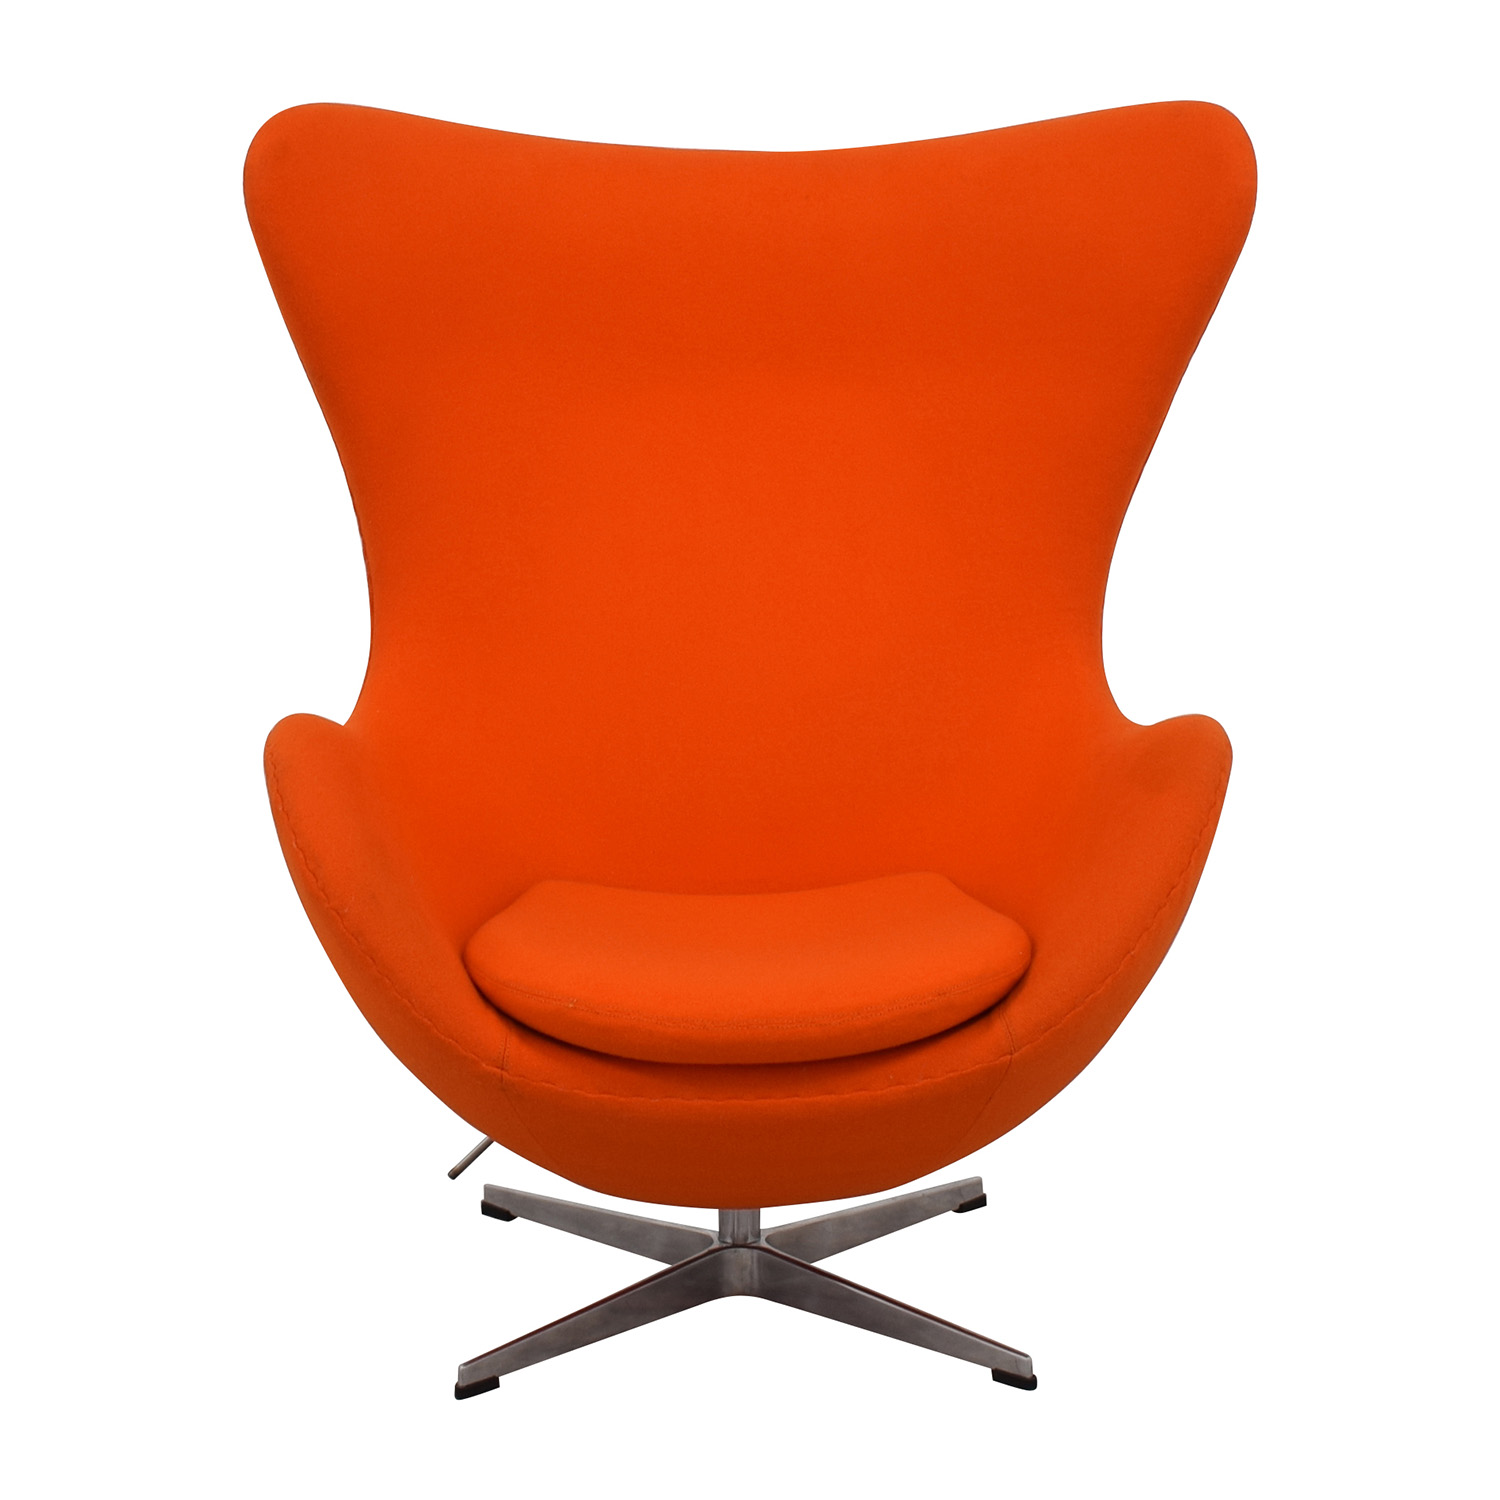 Inmod INMod Jacobsen Orange Egg Chair second hand ...  sc 1 st  Furnishare & 66% OFF - Inmod INMod Jacobsen Orange Egg Chair / Chairs